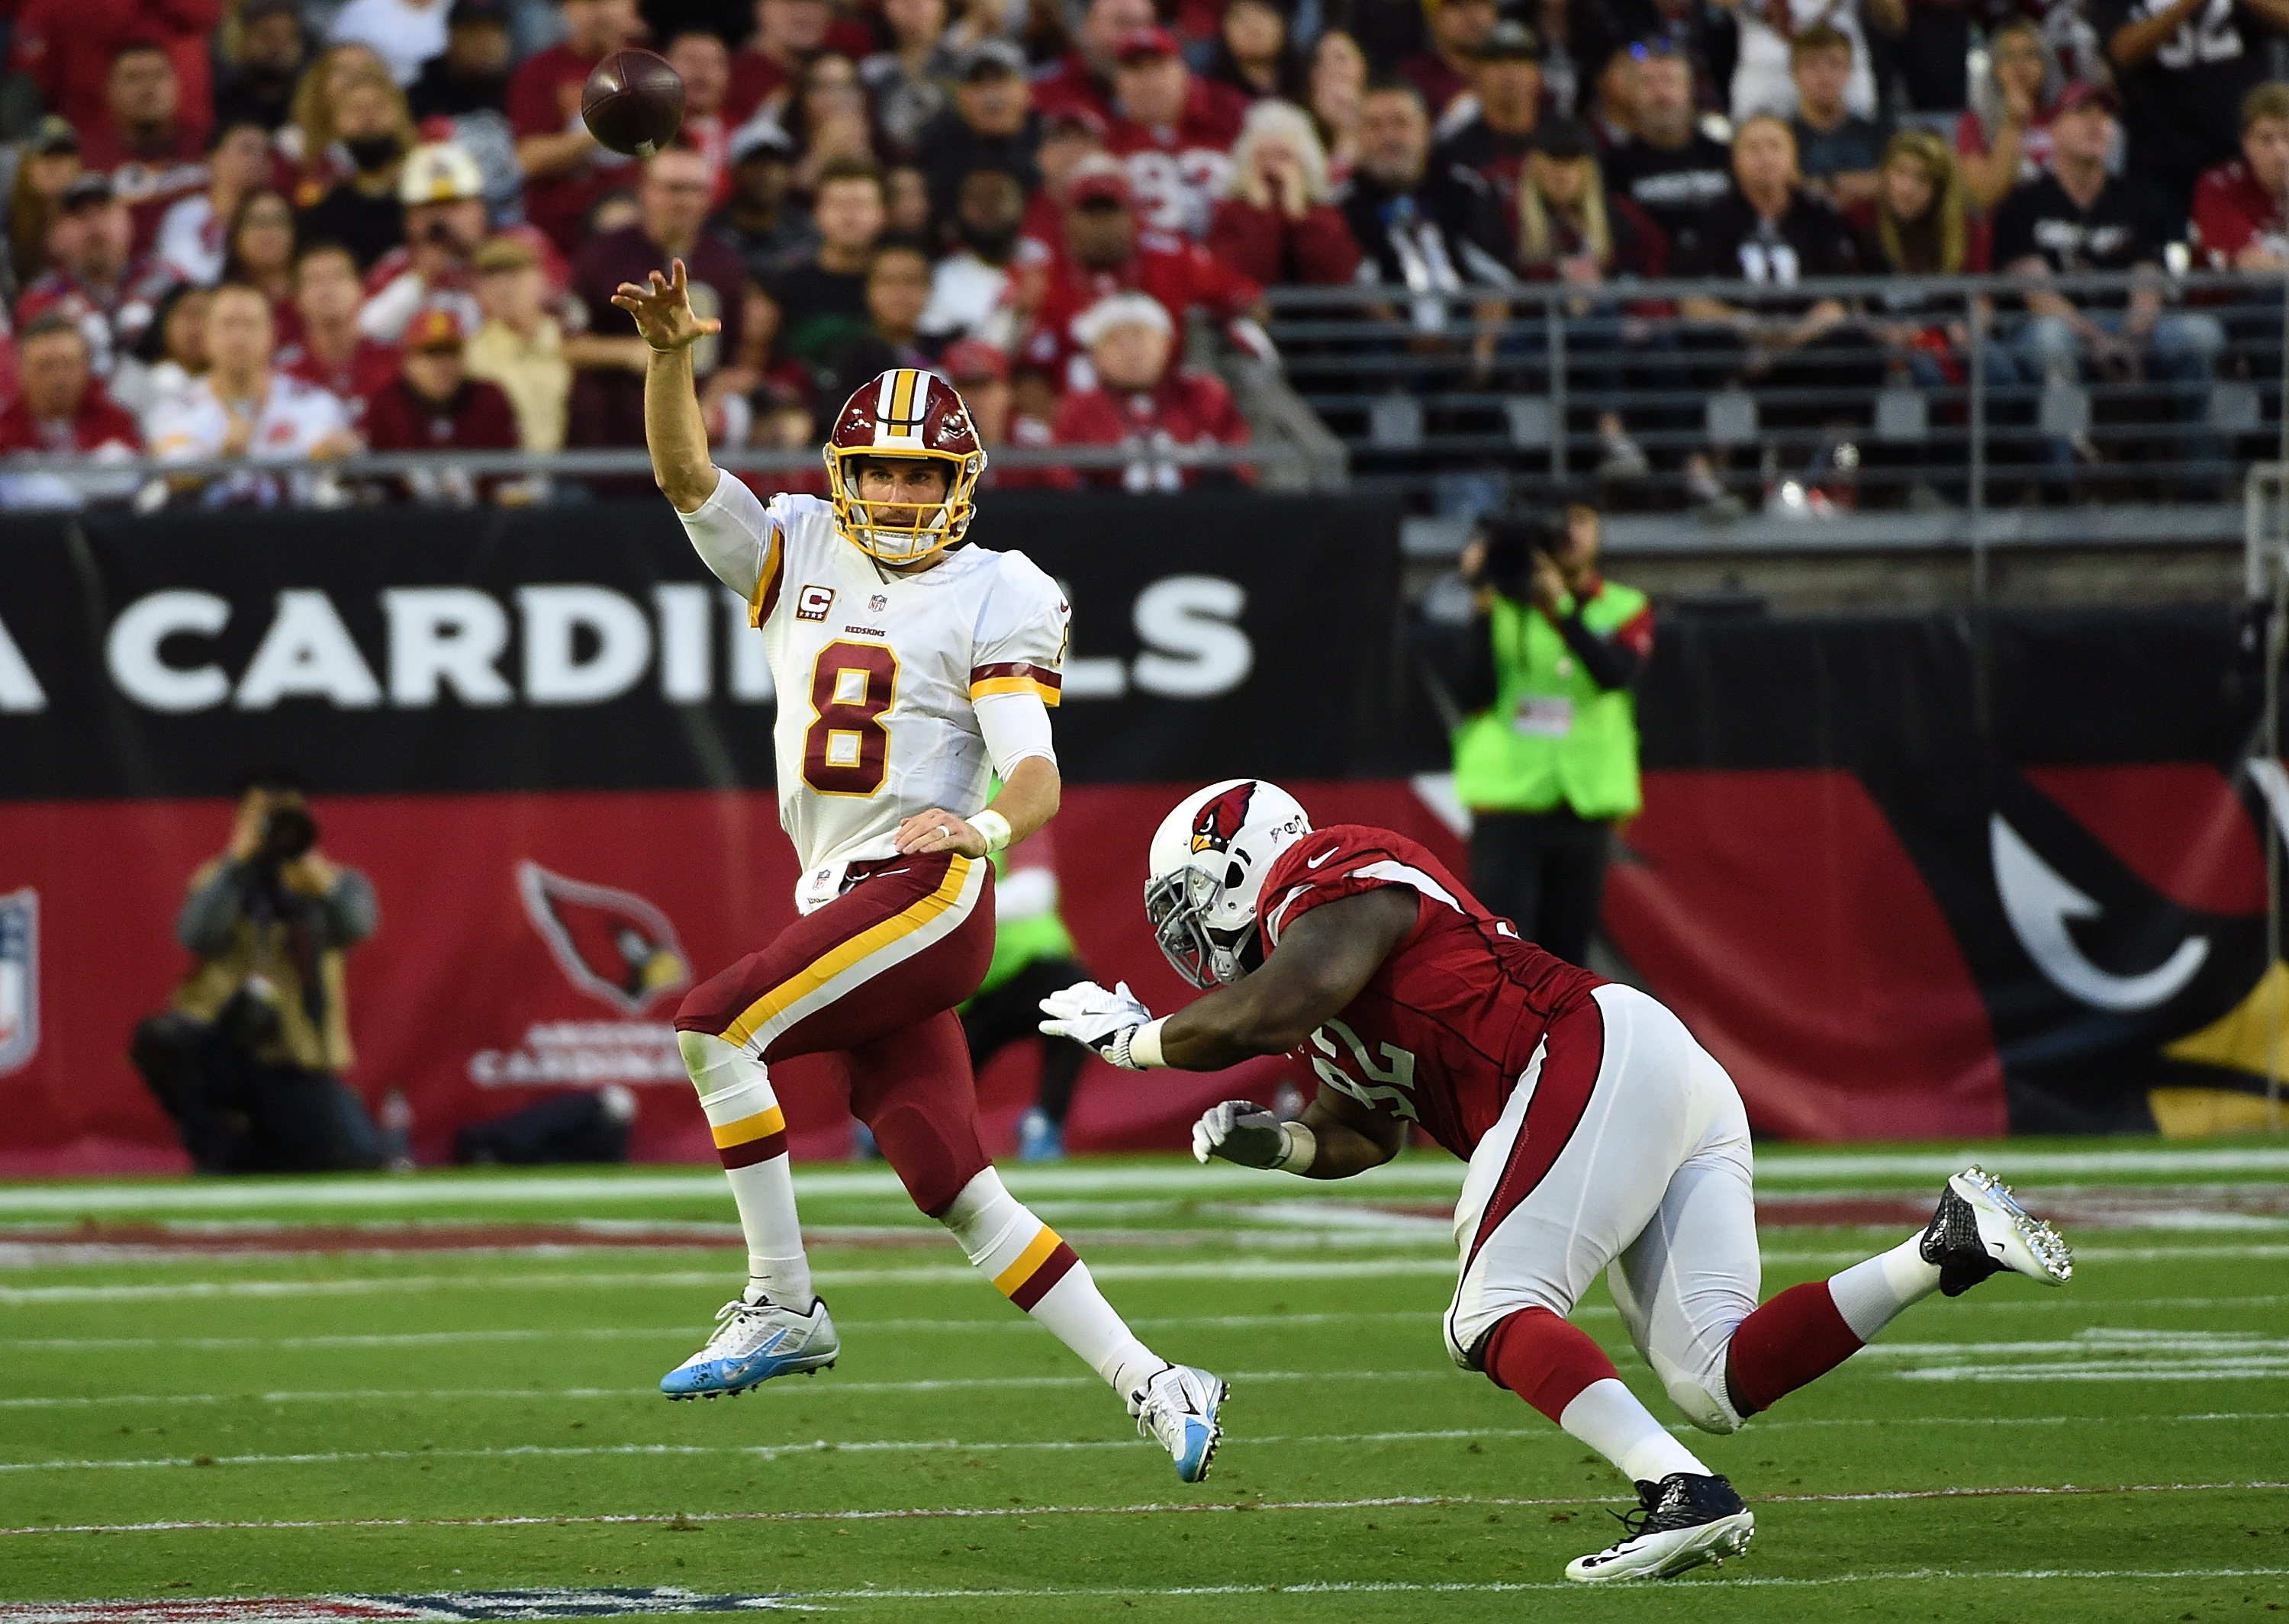 Cardinals vs. Redskins: Preview, score prediction for Week 15